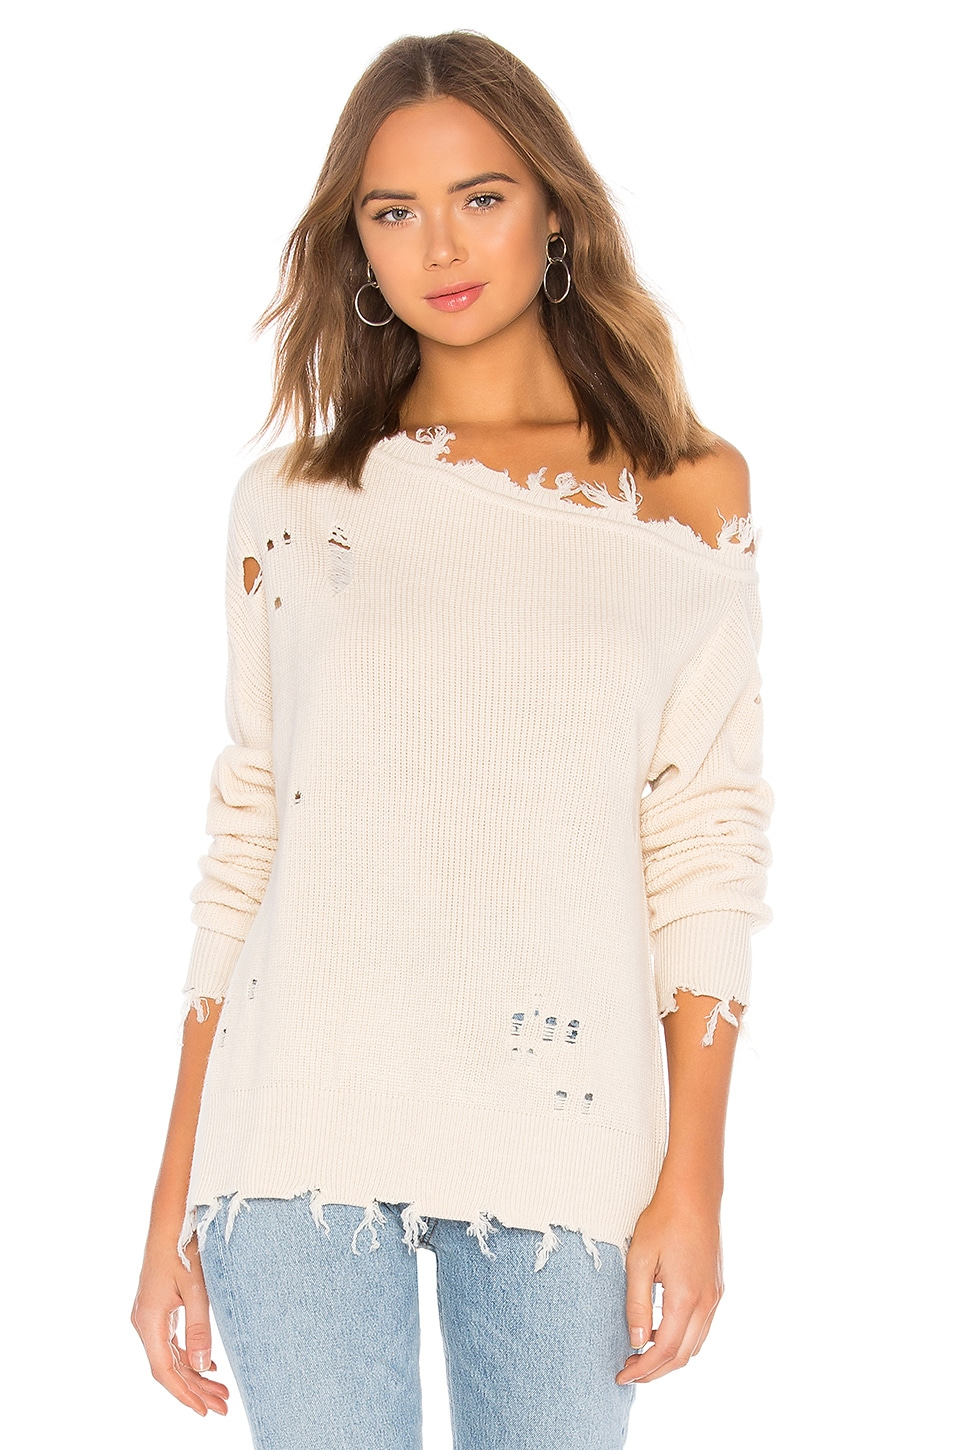 Lovers + Friends Jill Sweater in Ivory